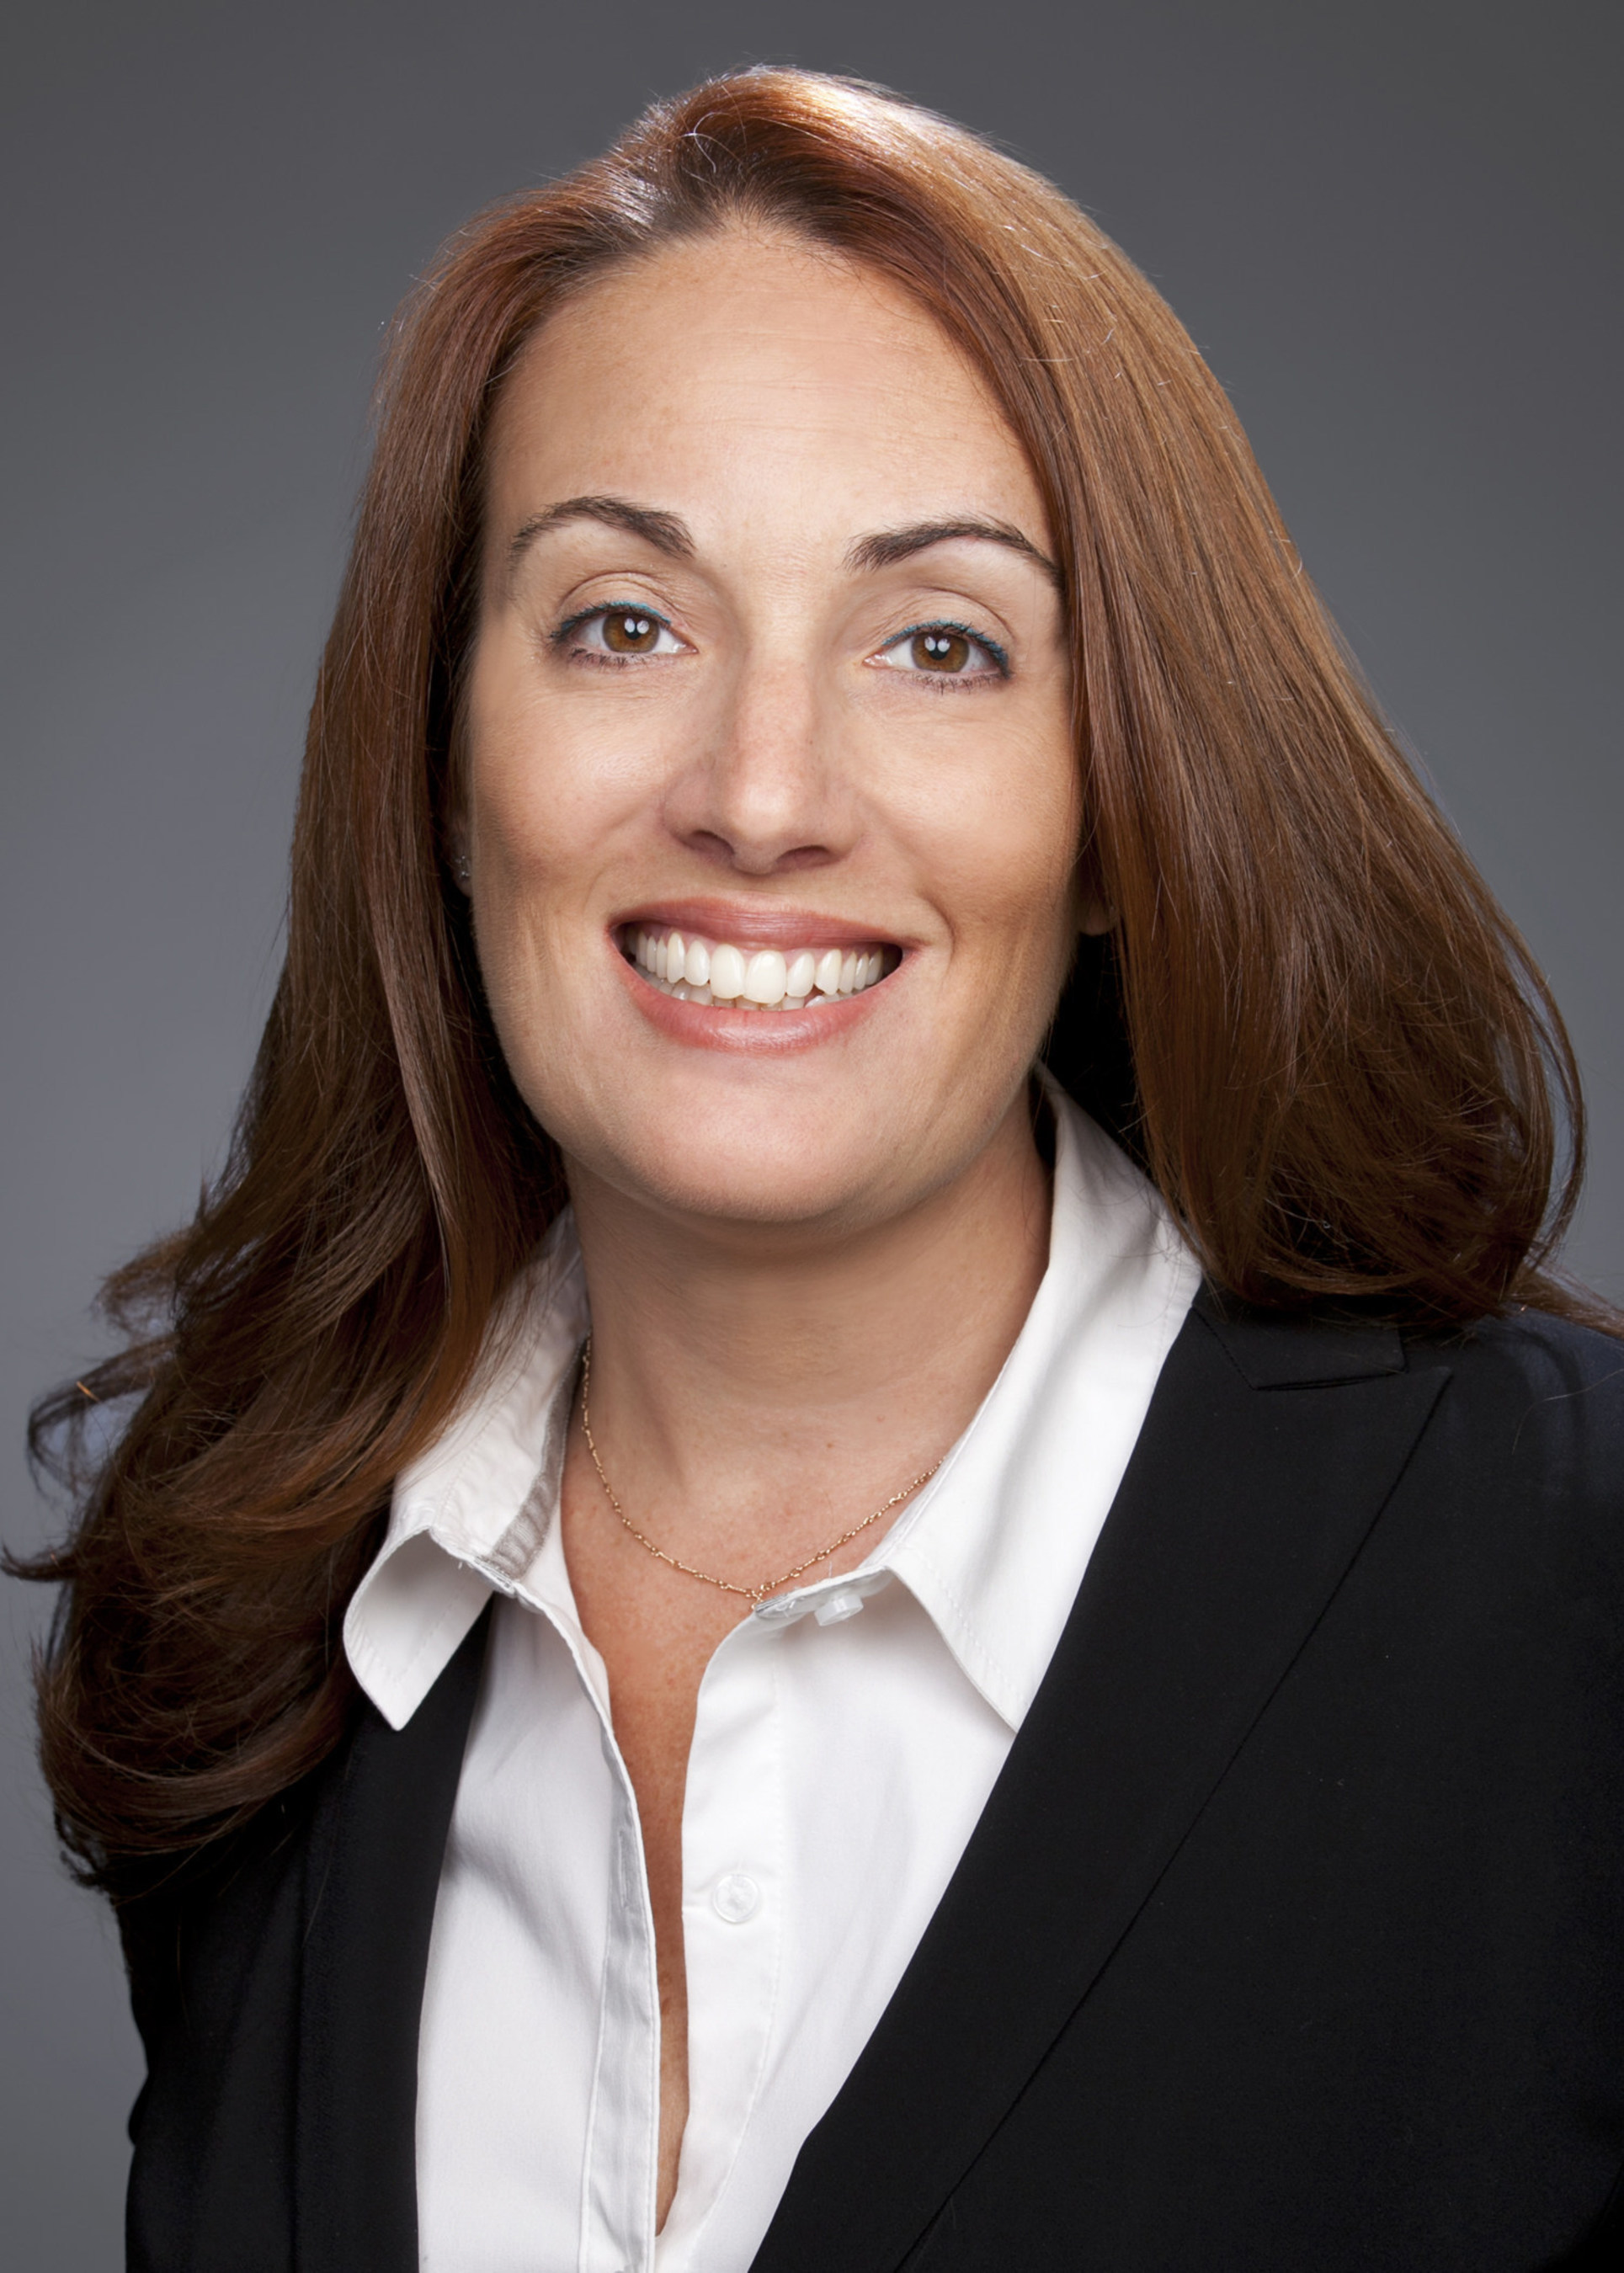 Heather Tenuto, vice president of worldwide channel programs and sales enablement at ShoreTel